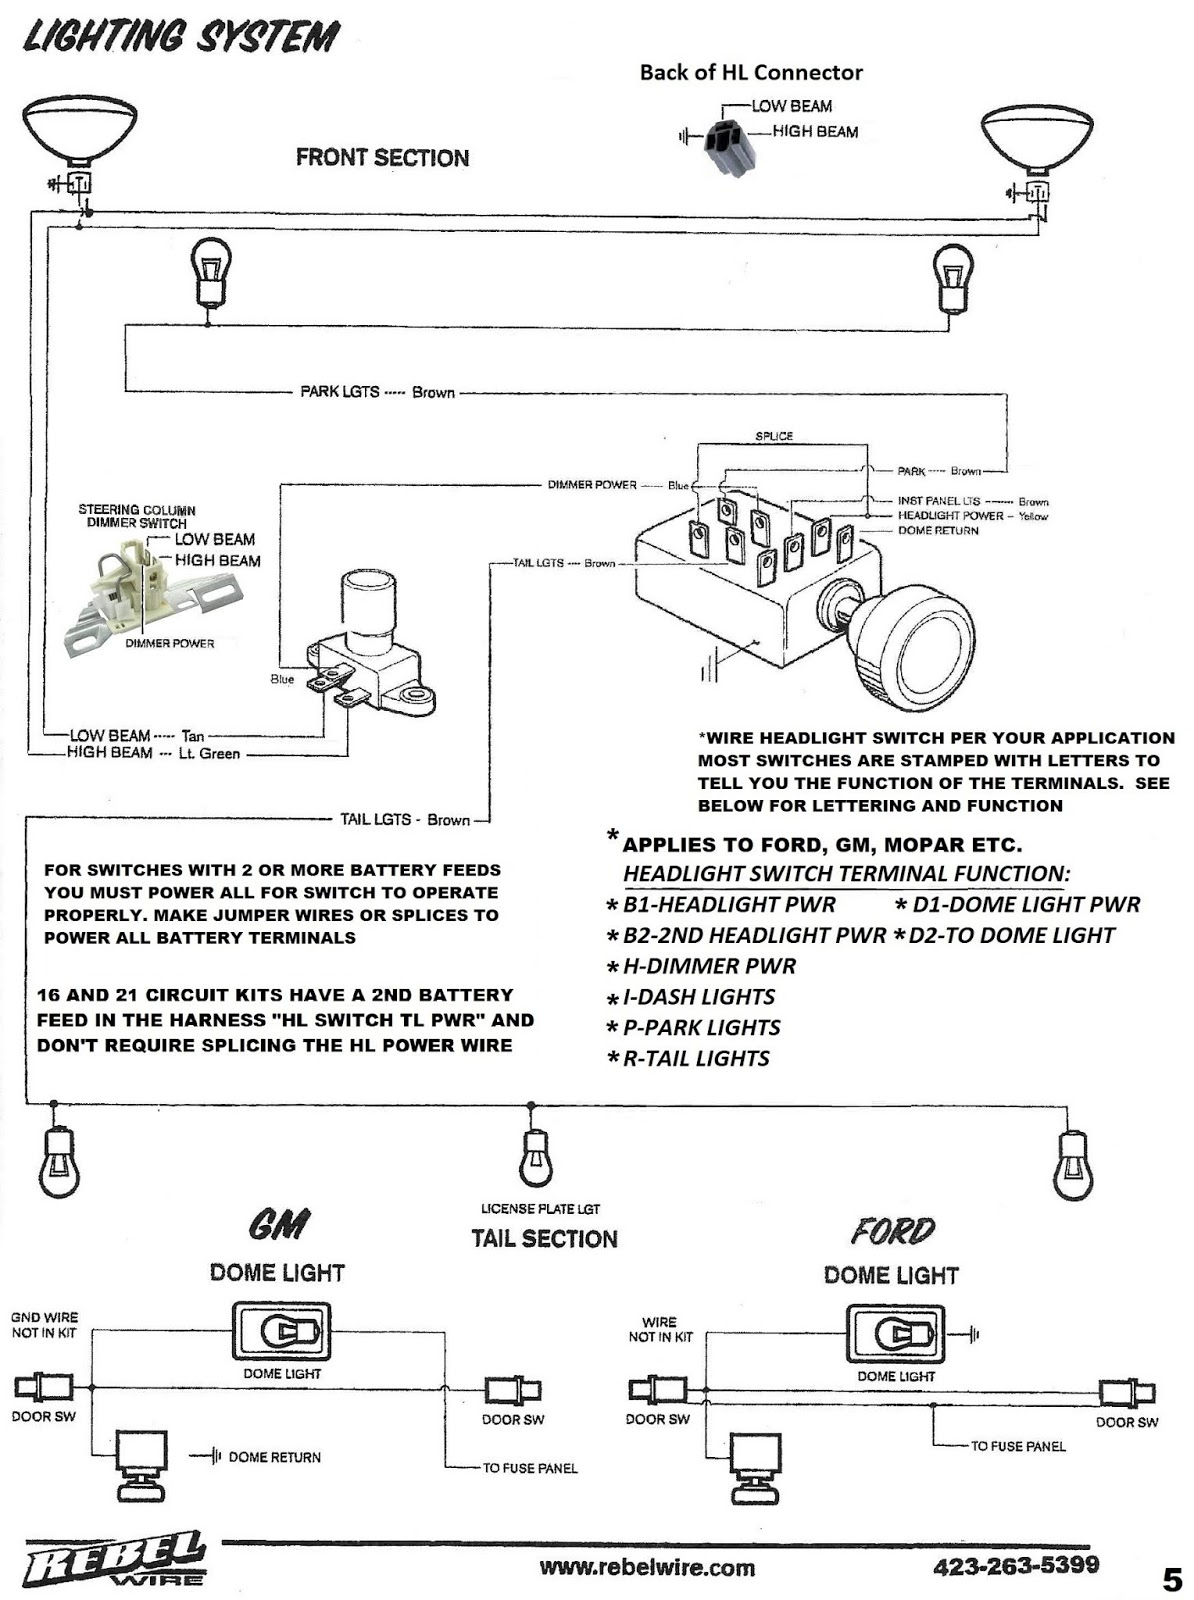 medium resolution of rebel wire lighting system wiring diagram